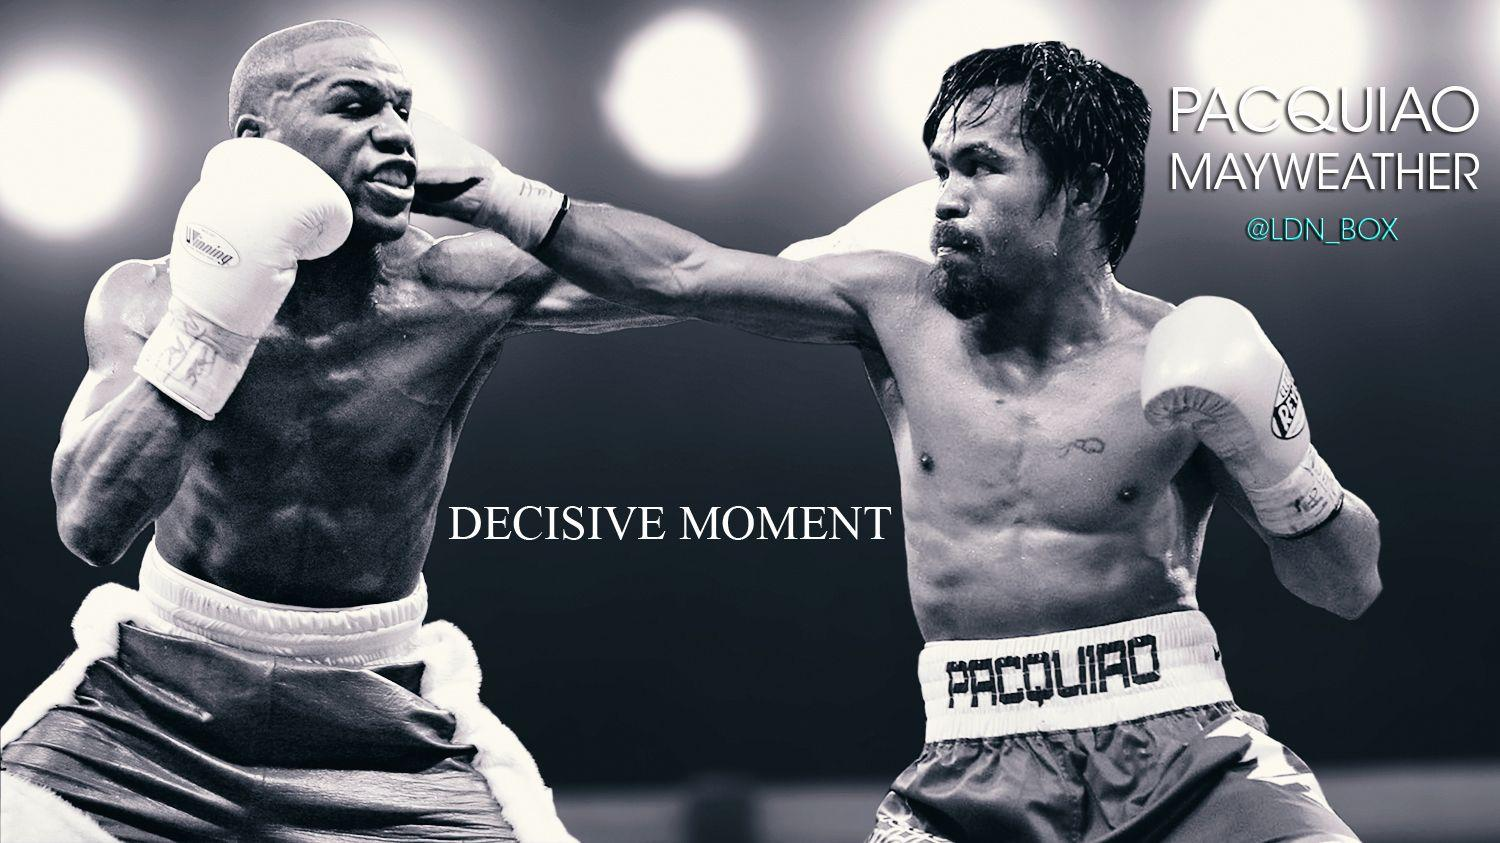 Floyd Mayweather And Manny Pacquiao Wallpapers - Wallpaper Cave